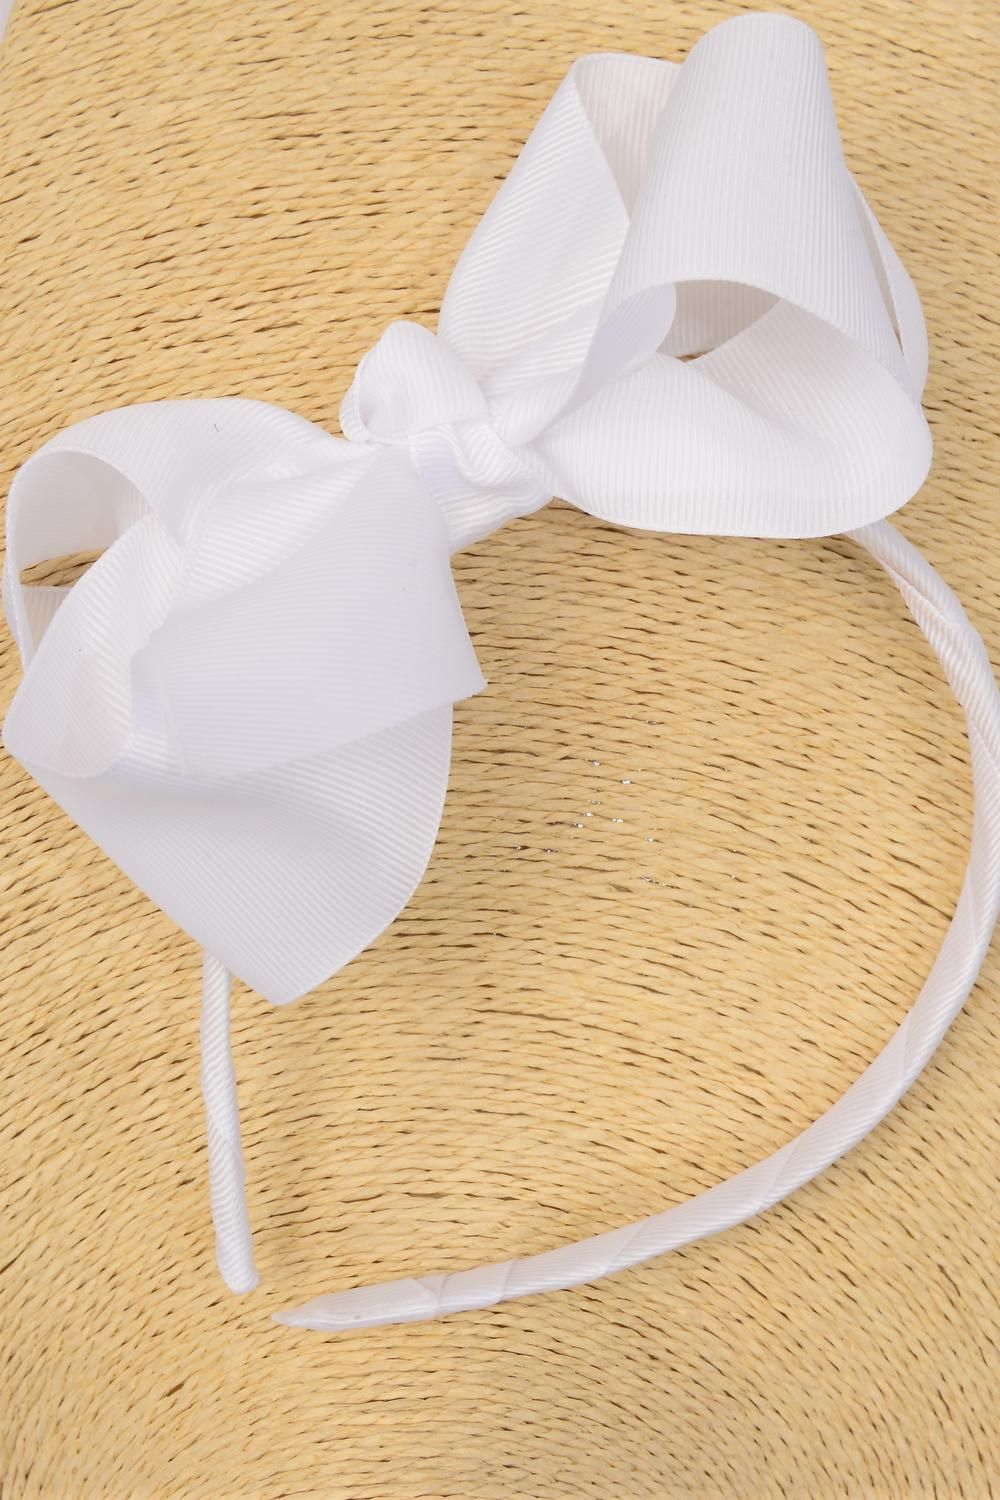 "Headband Horseshoe Grosgrain Bow-tie White/DZ **White** Bow Size-6""x 5"",Hang Tag & UPC Code,W Clear Box"